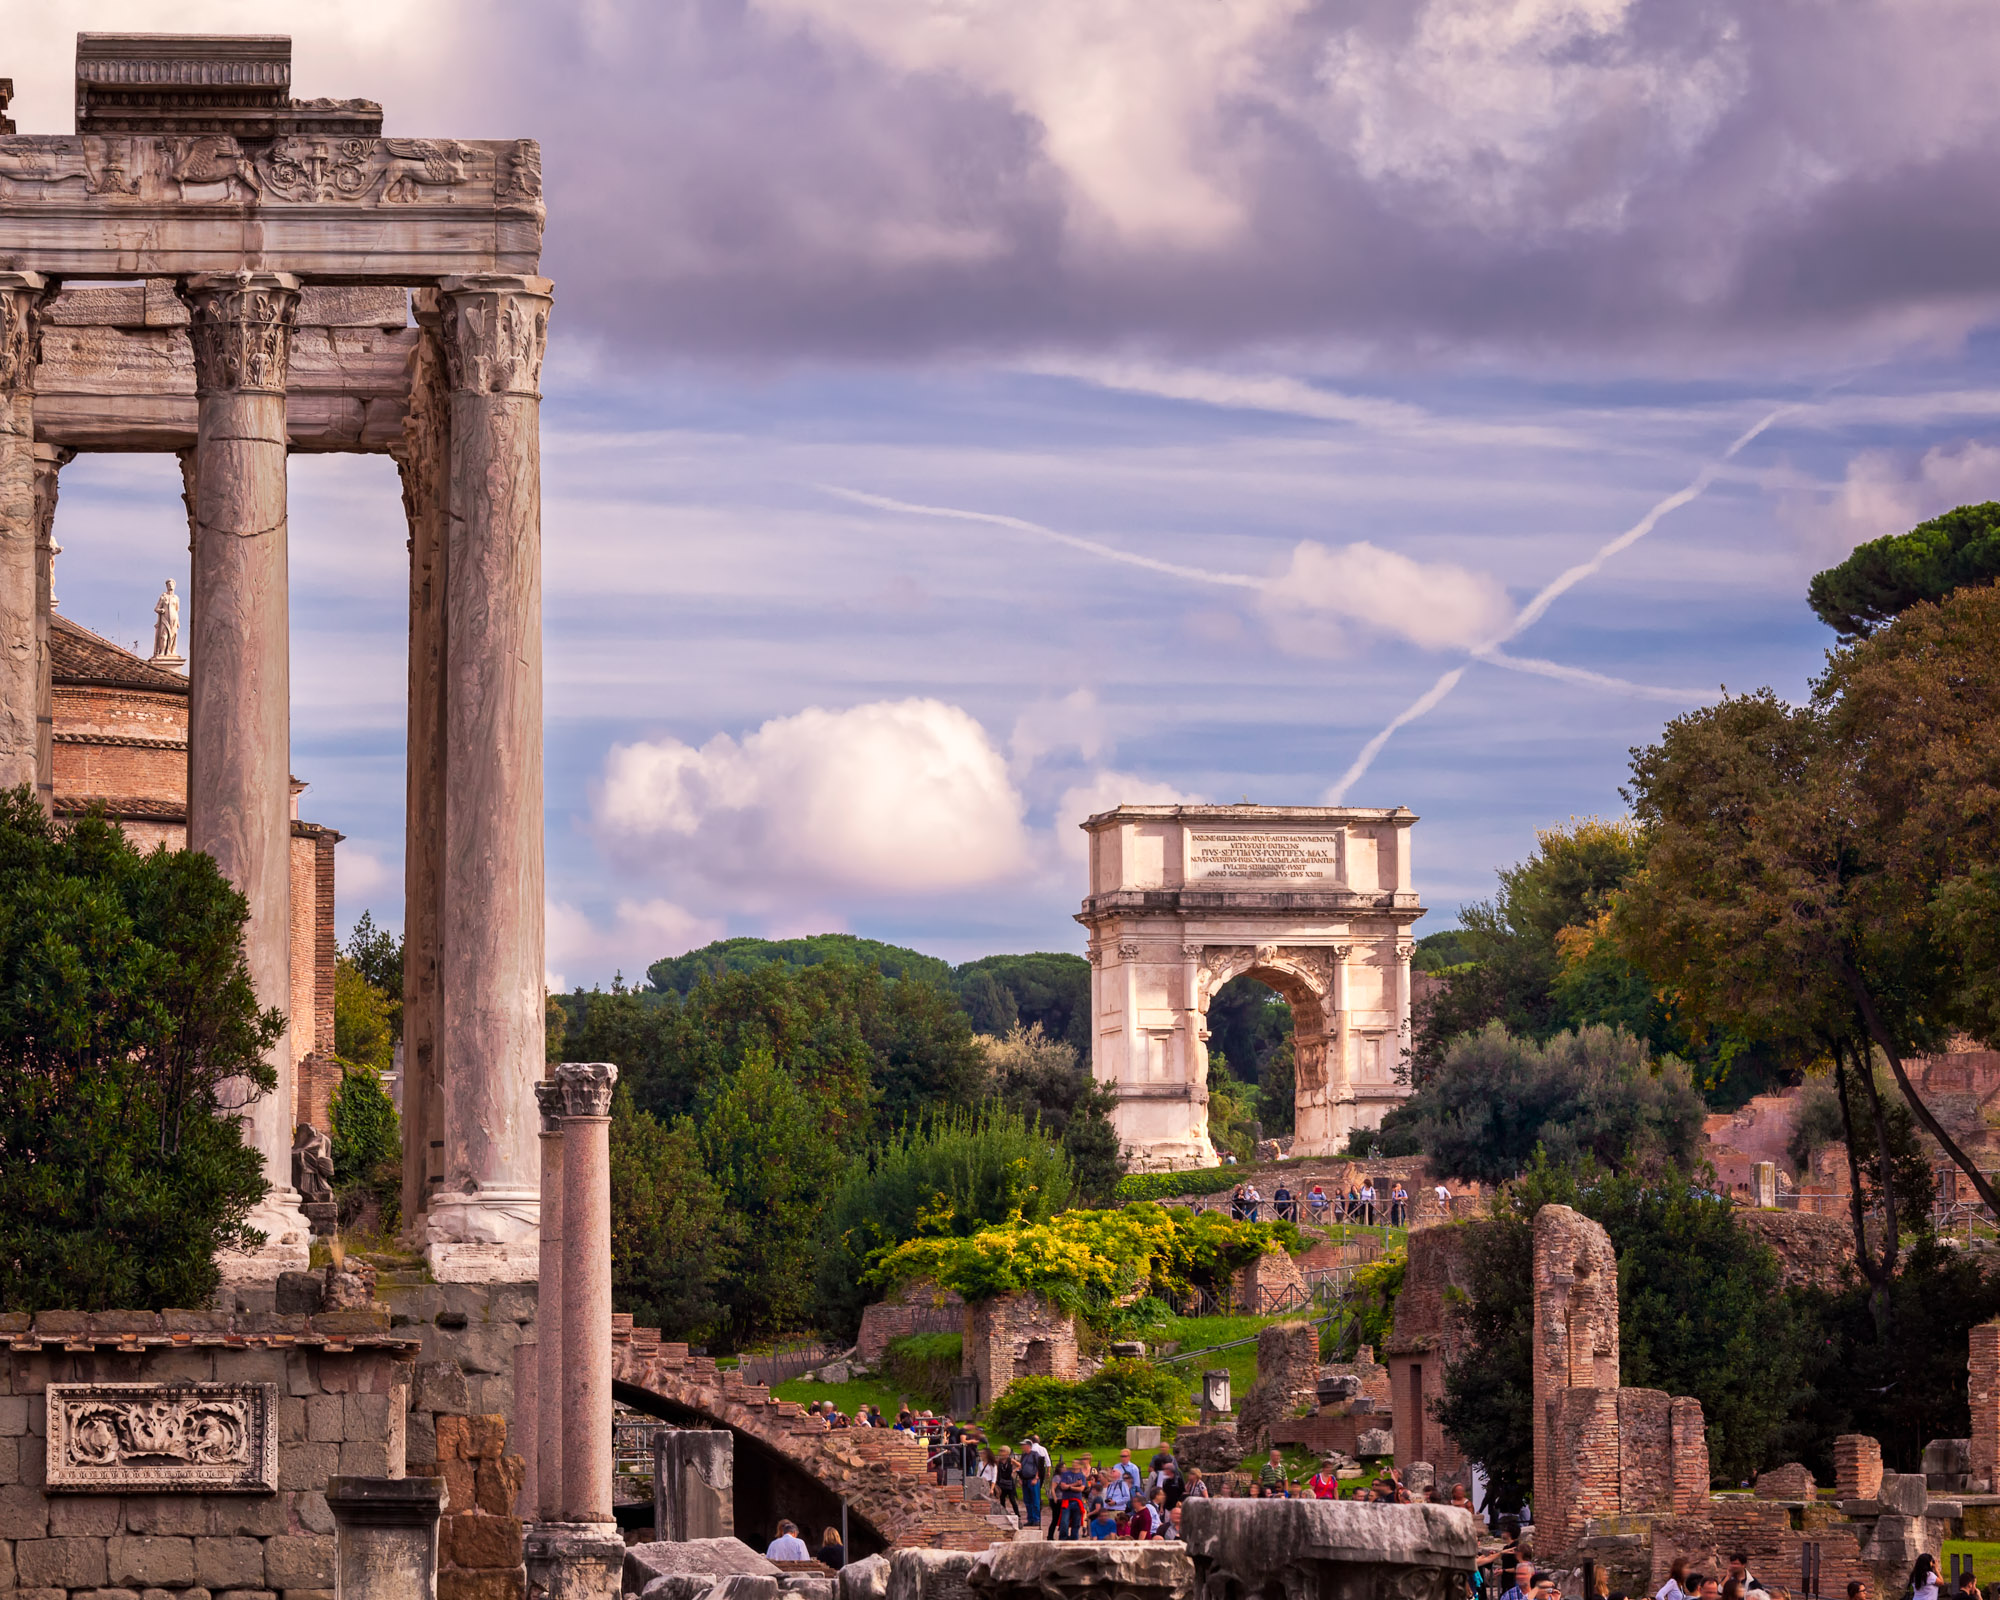 Temple of Antoninus and Faustina and Arch of Titus, Rome, Italy